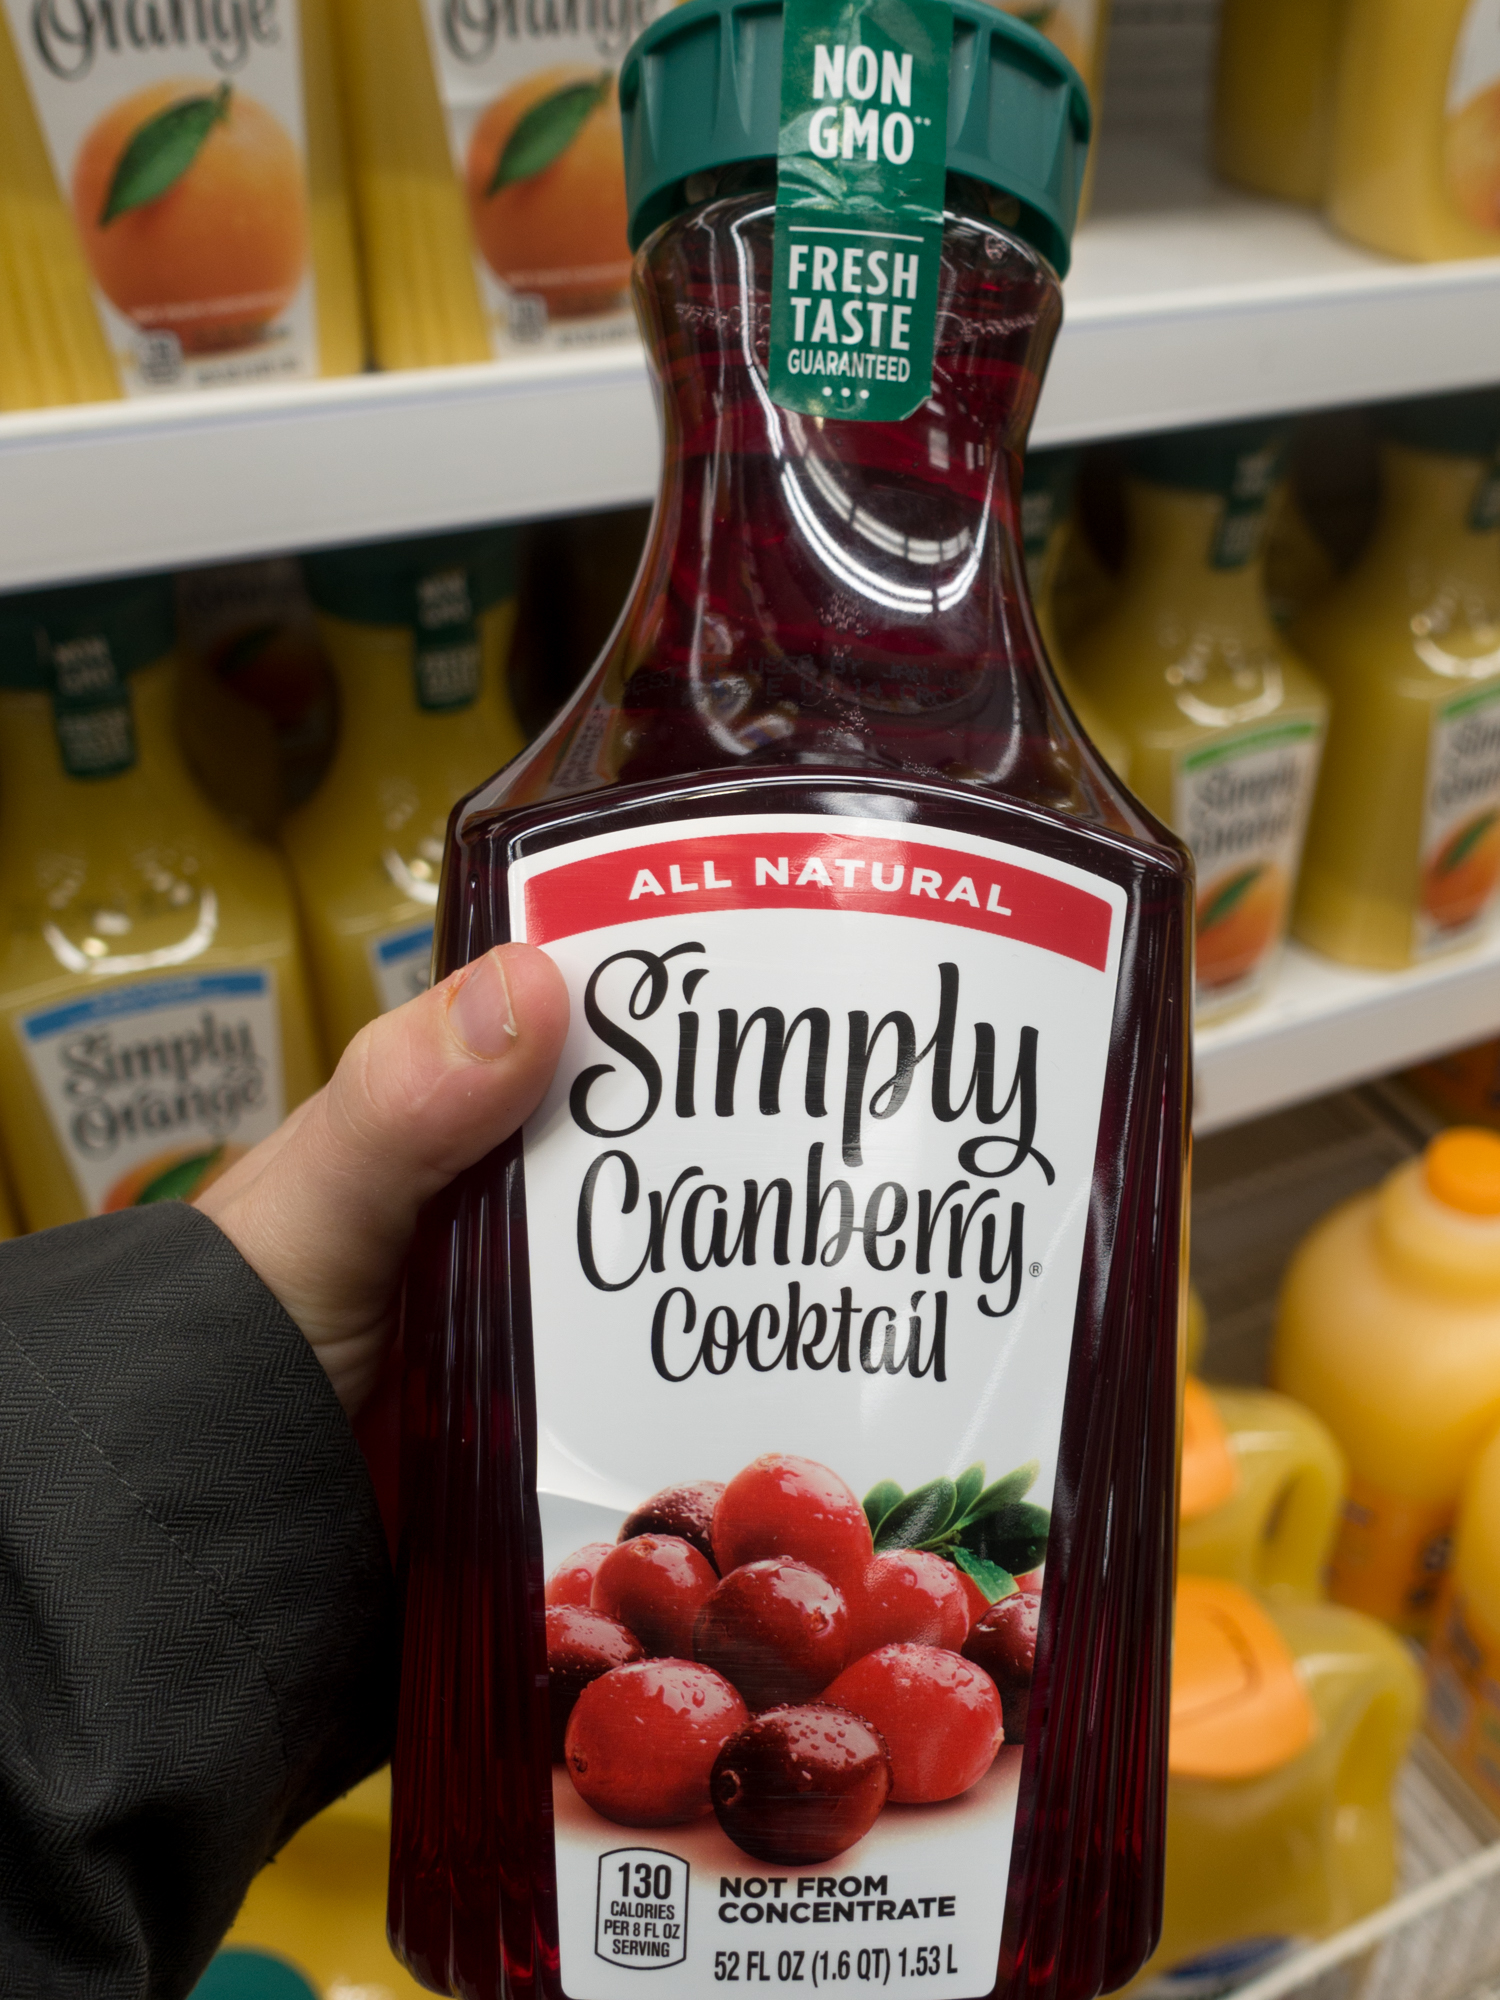 This Cranberry Margarita is one of my favorite cocktails to make during the holidays. The base of the margarita is Simply® Cranberry Cocktail which can be found at your local Kroger.